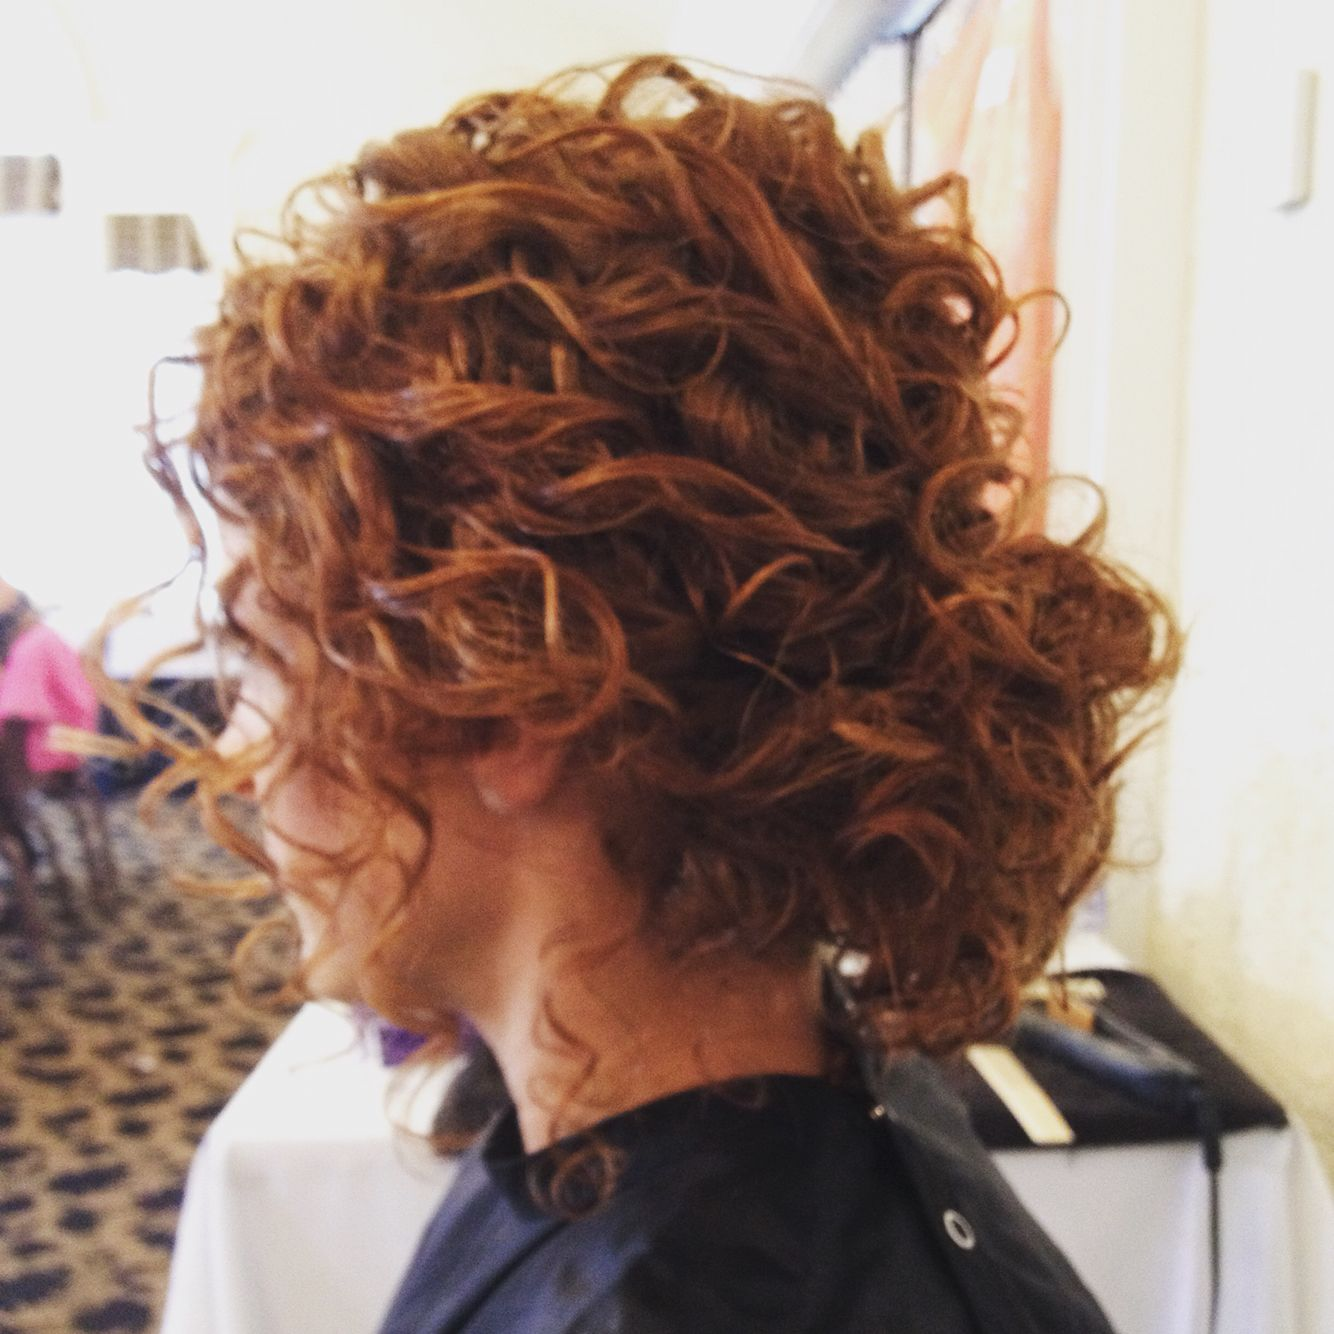 naturally curly hair low bun updo   hair   curly hair styles